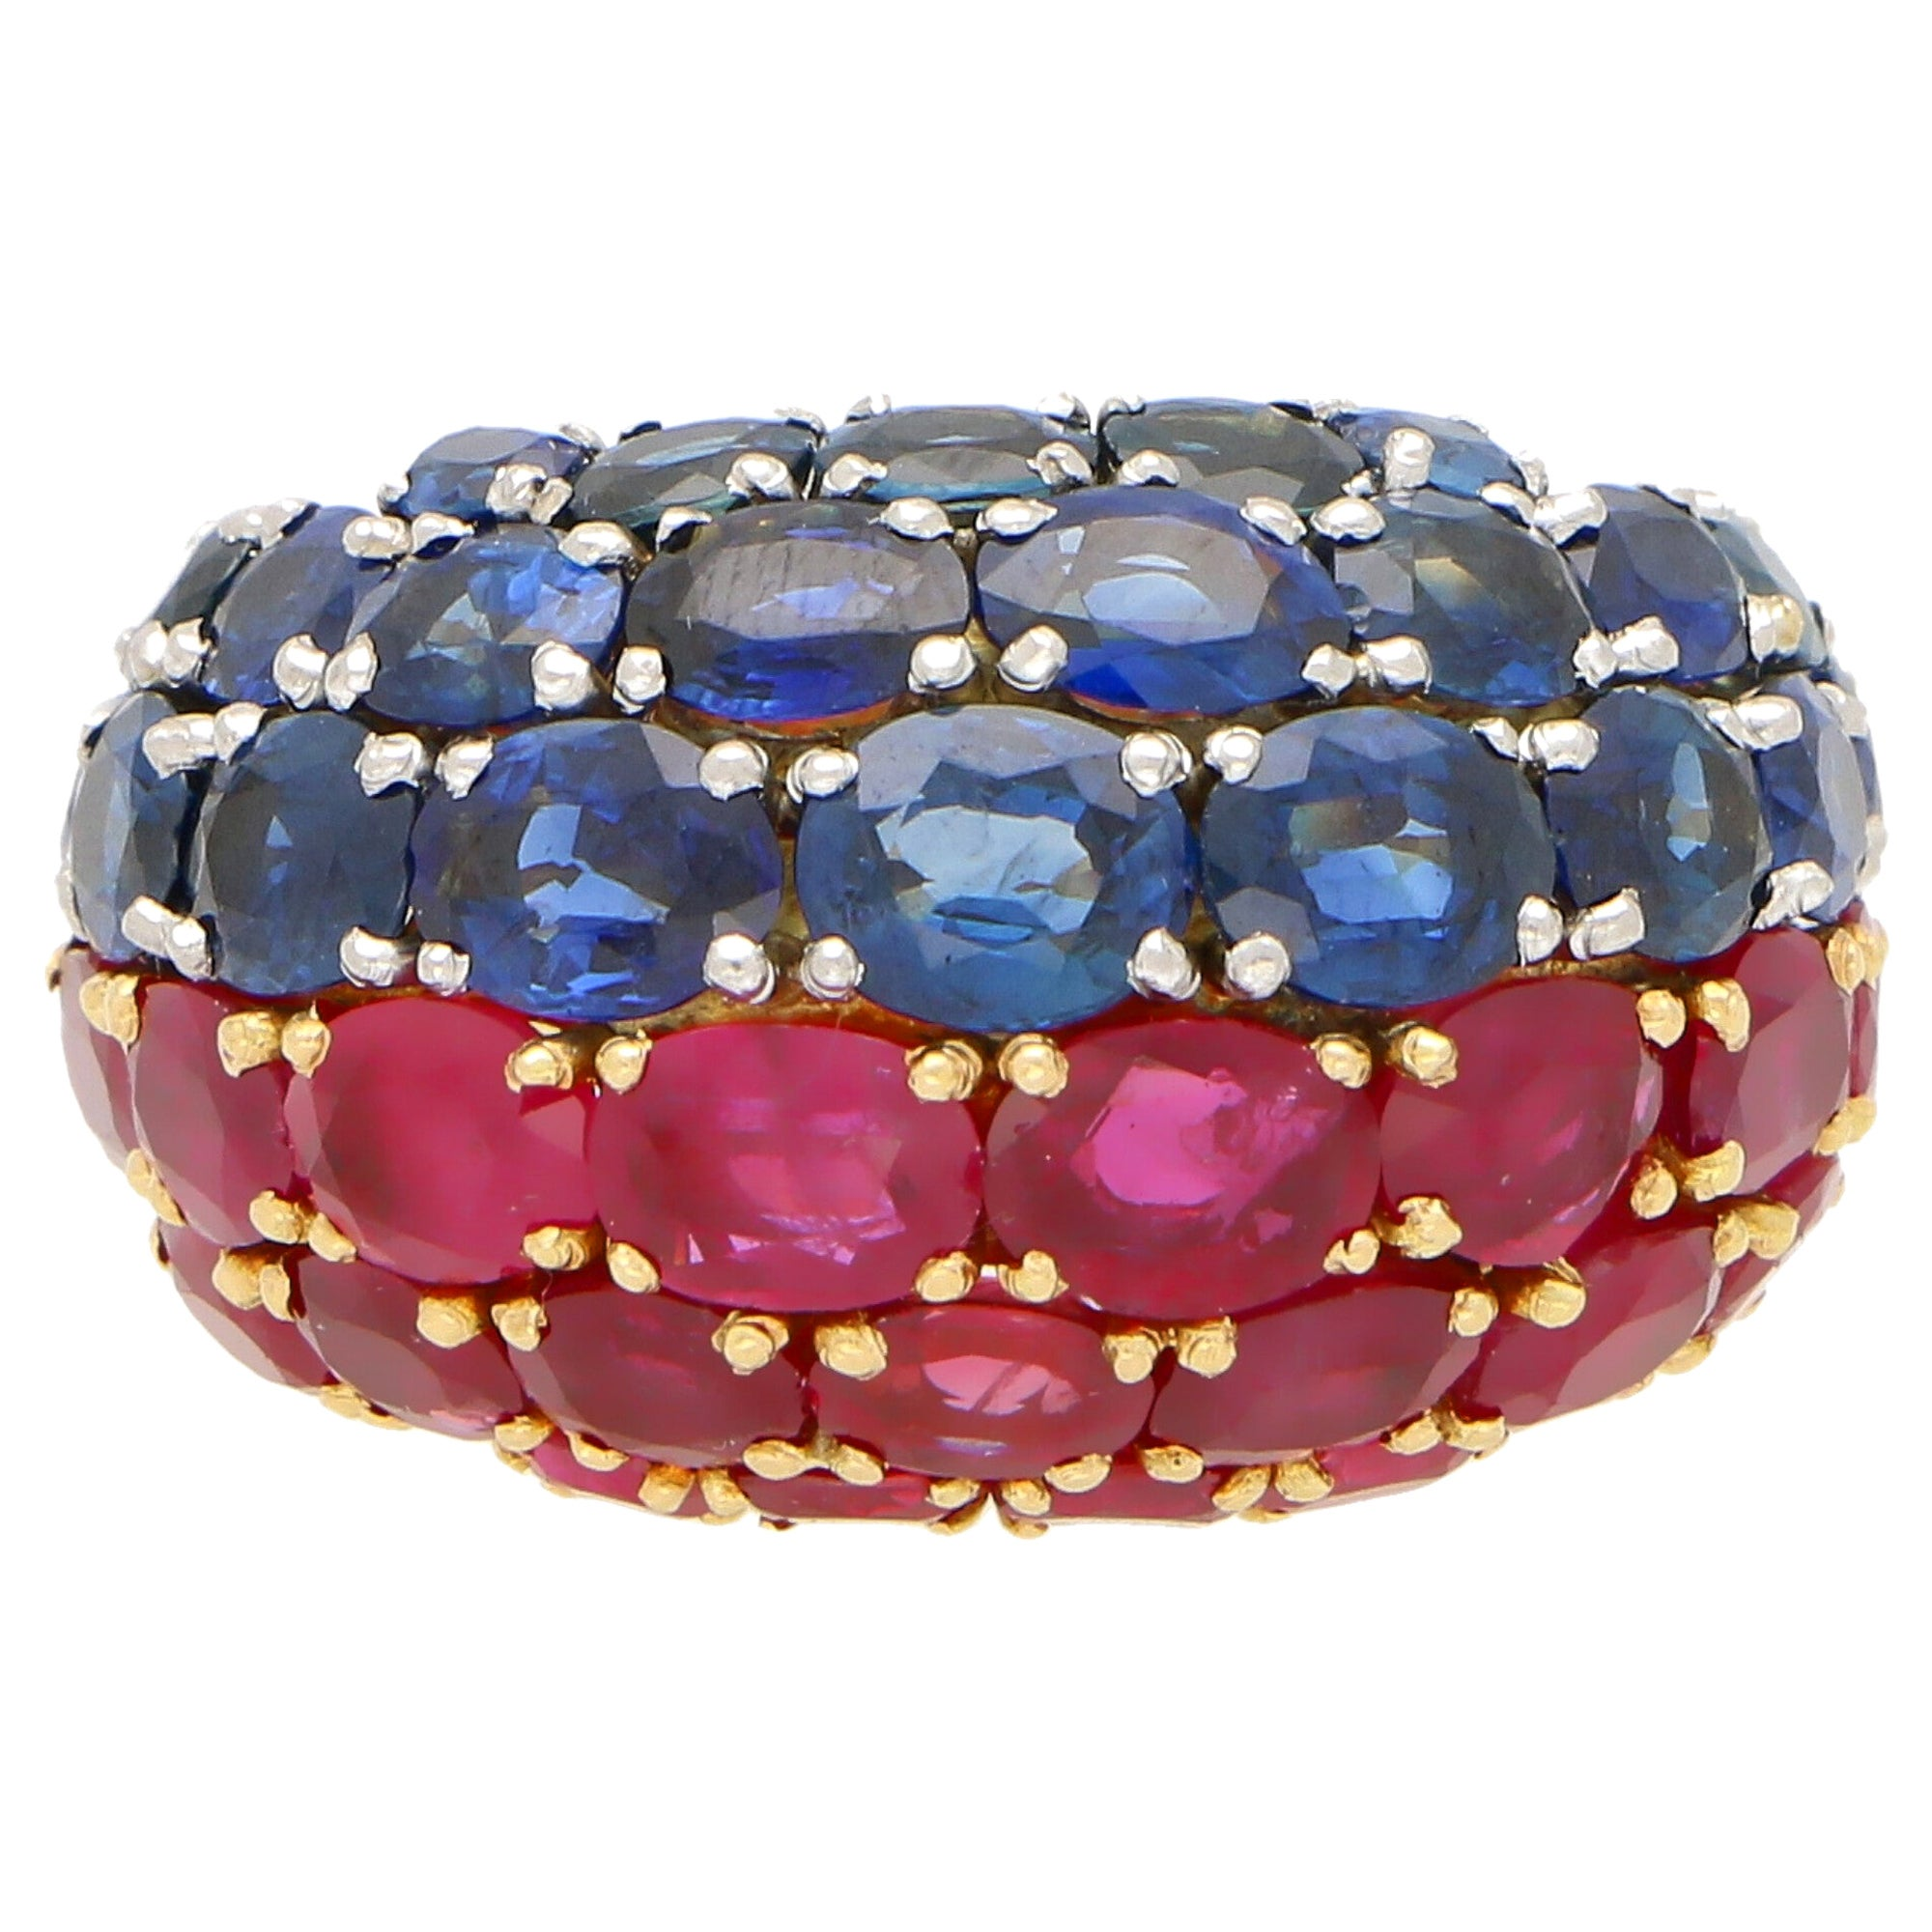 Ruby and Sapphire Bombe Ring Set in 18 Karat Yellow Gold and Platinum